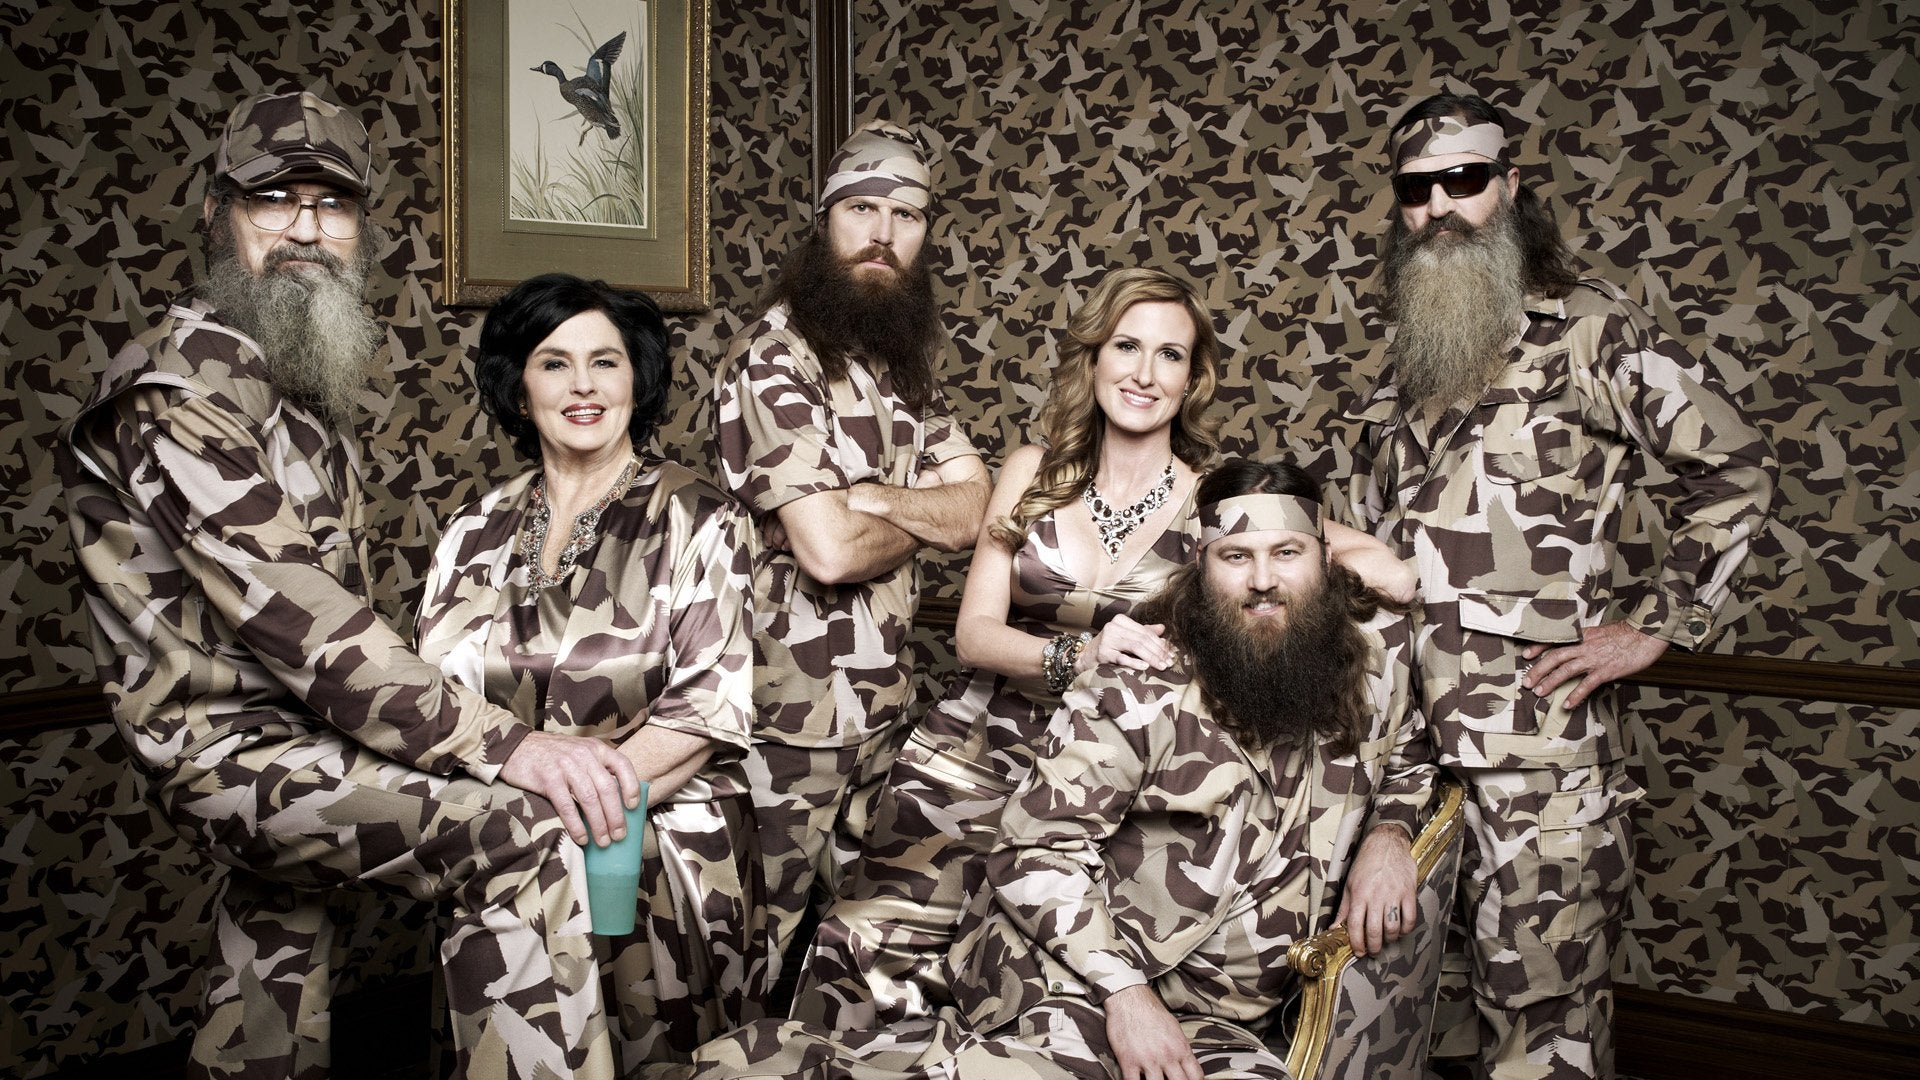 Duck Dynasty: A Mother's Day of Duck